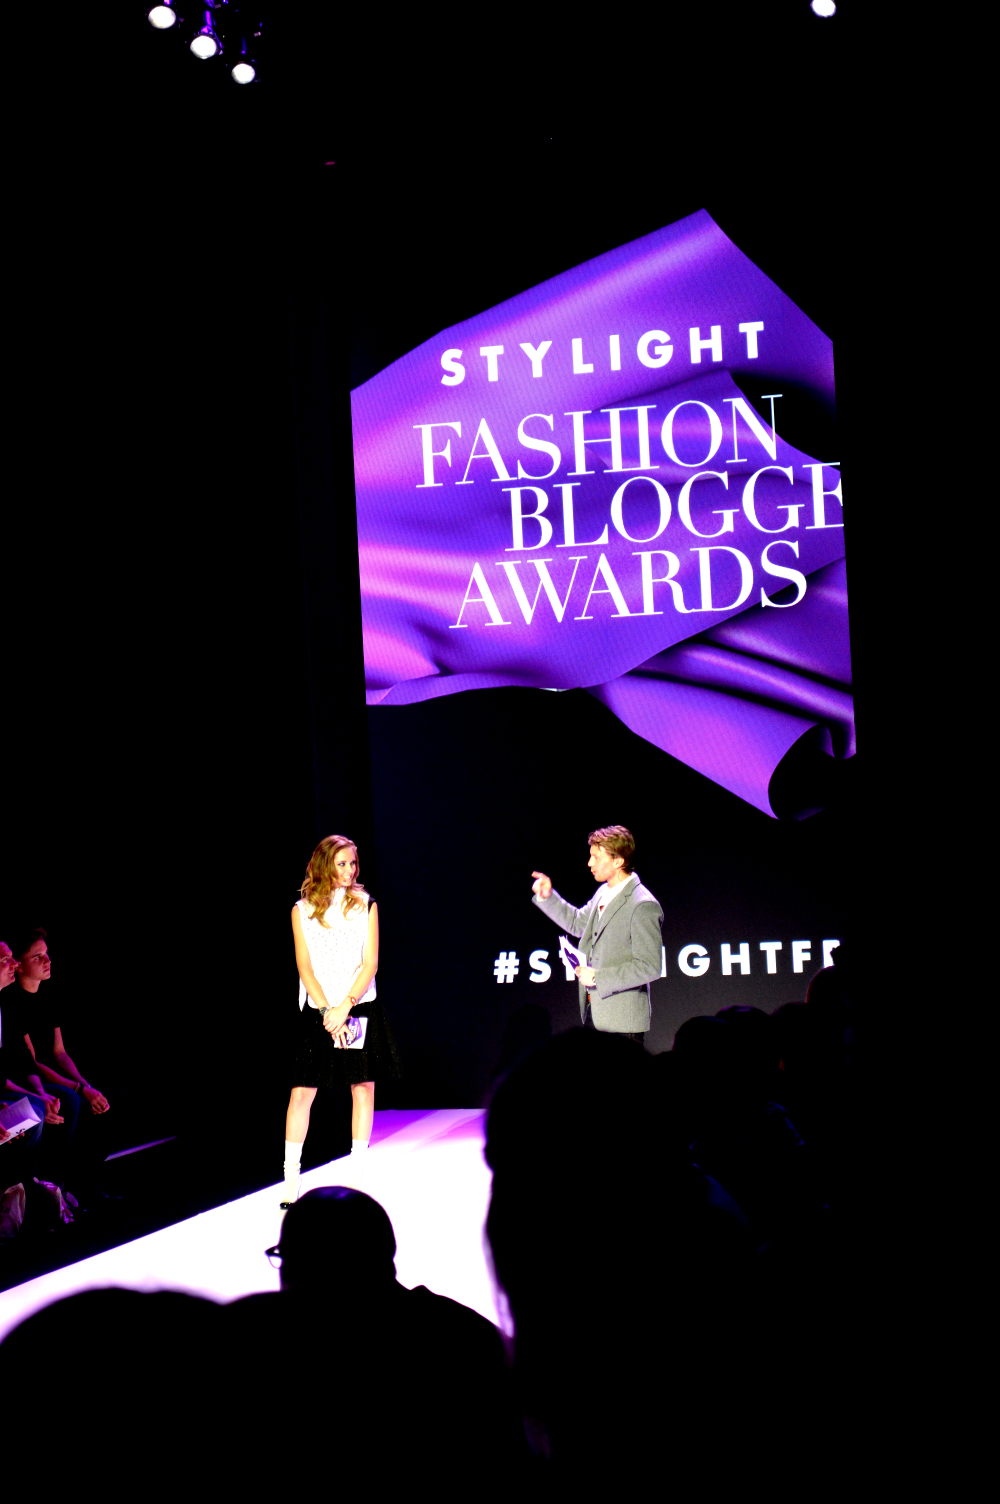 StylightFashionBloggerAwards18